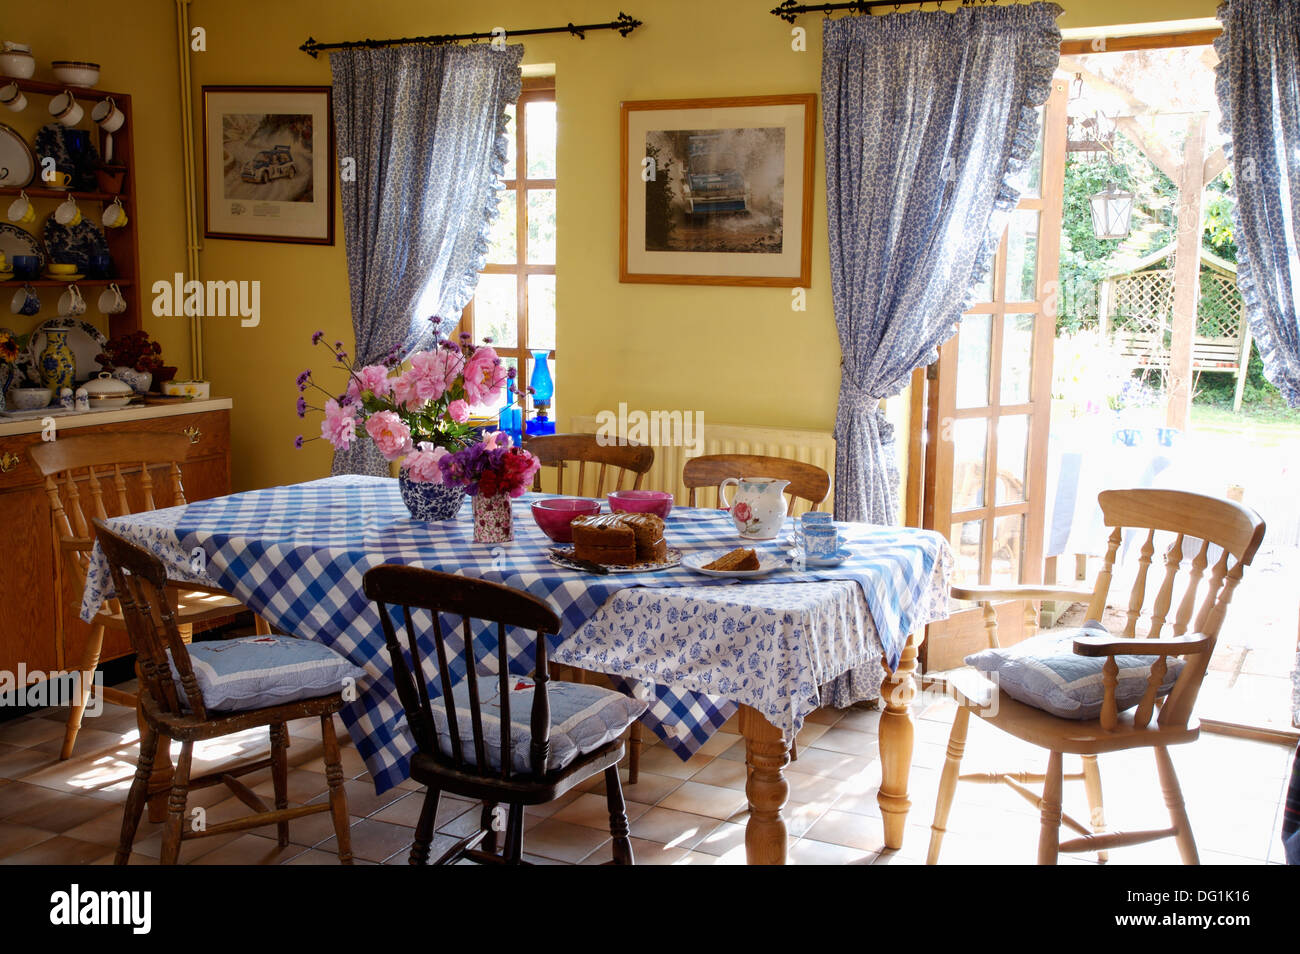 Blue Checked Cloth On Table With Stick Back Chairs In Yellow Dining Room Curtains